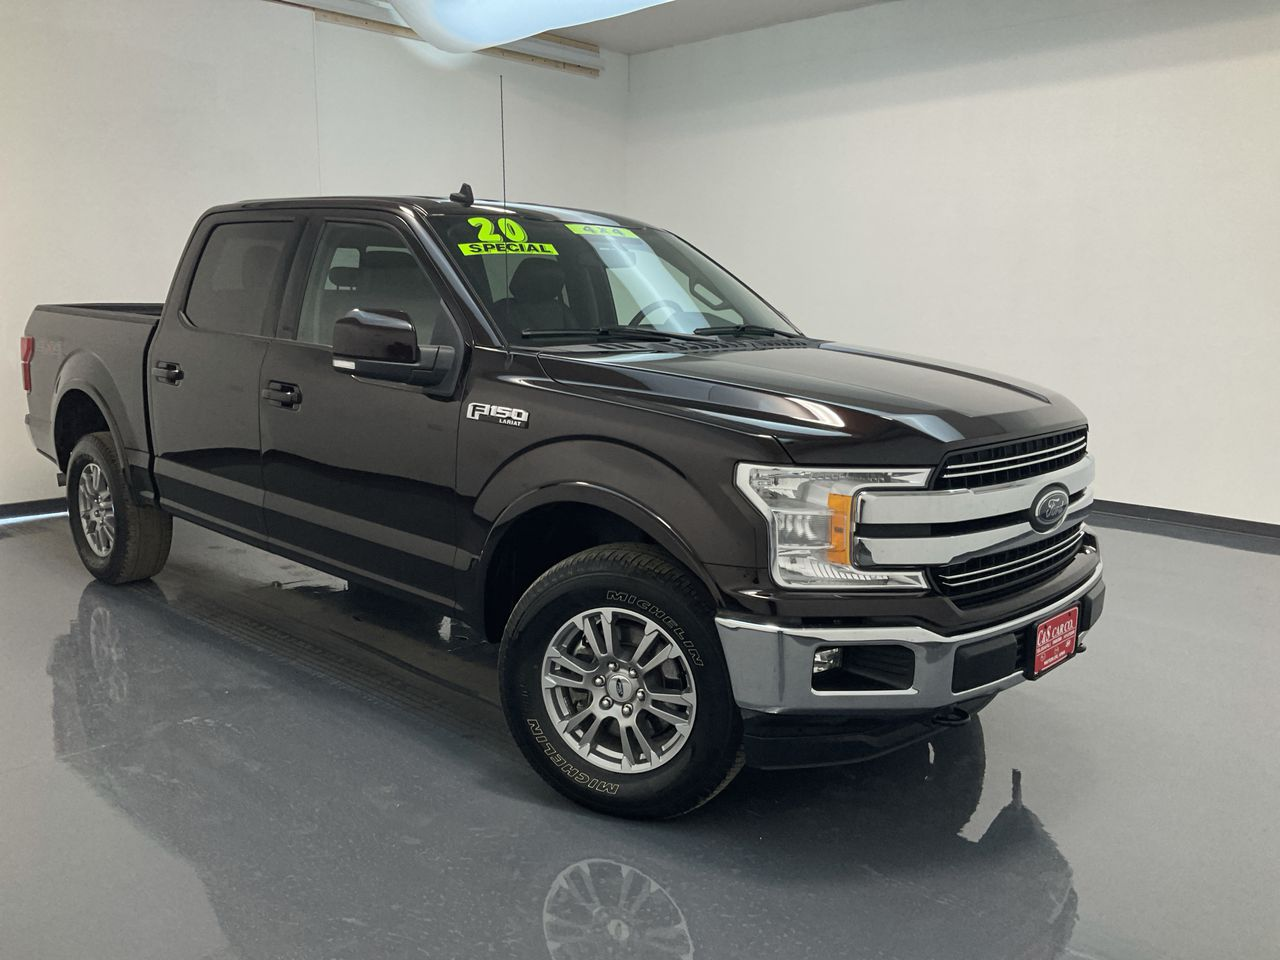 2020 Ford F-150 Supercrew 4WD 157  - 16511  - C & S Car Company